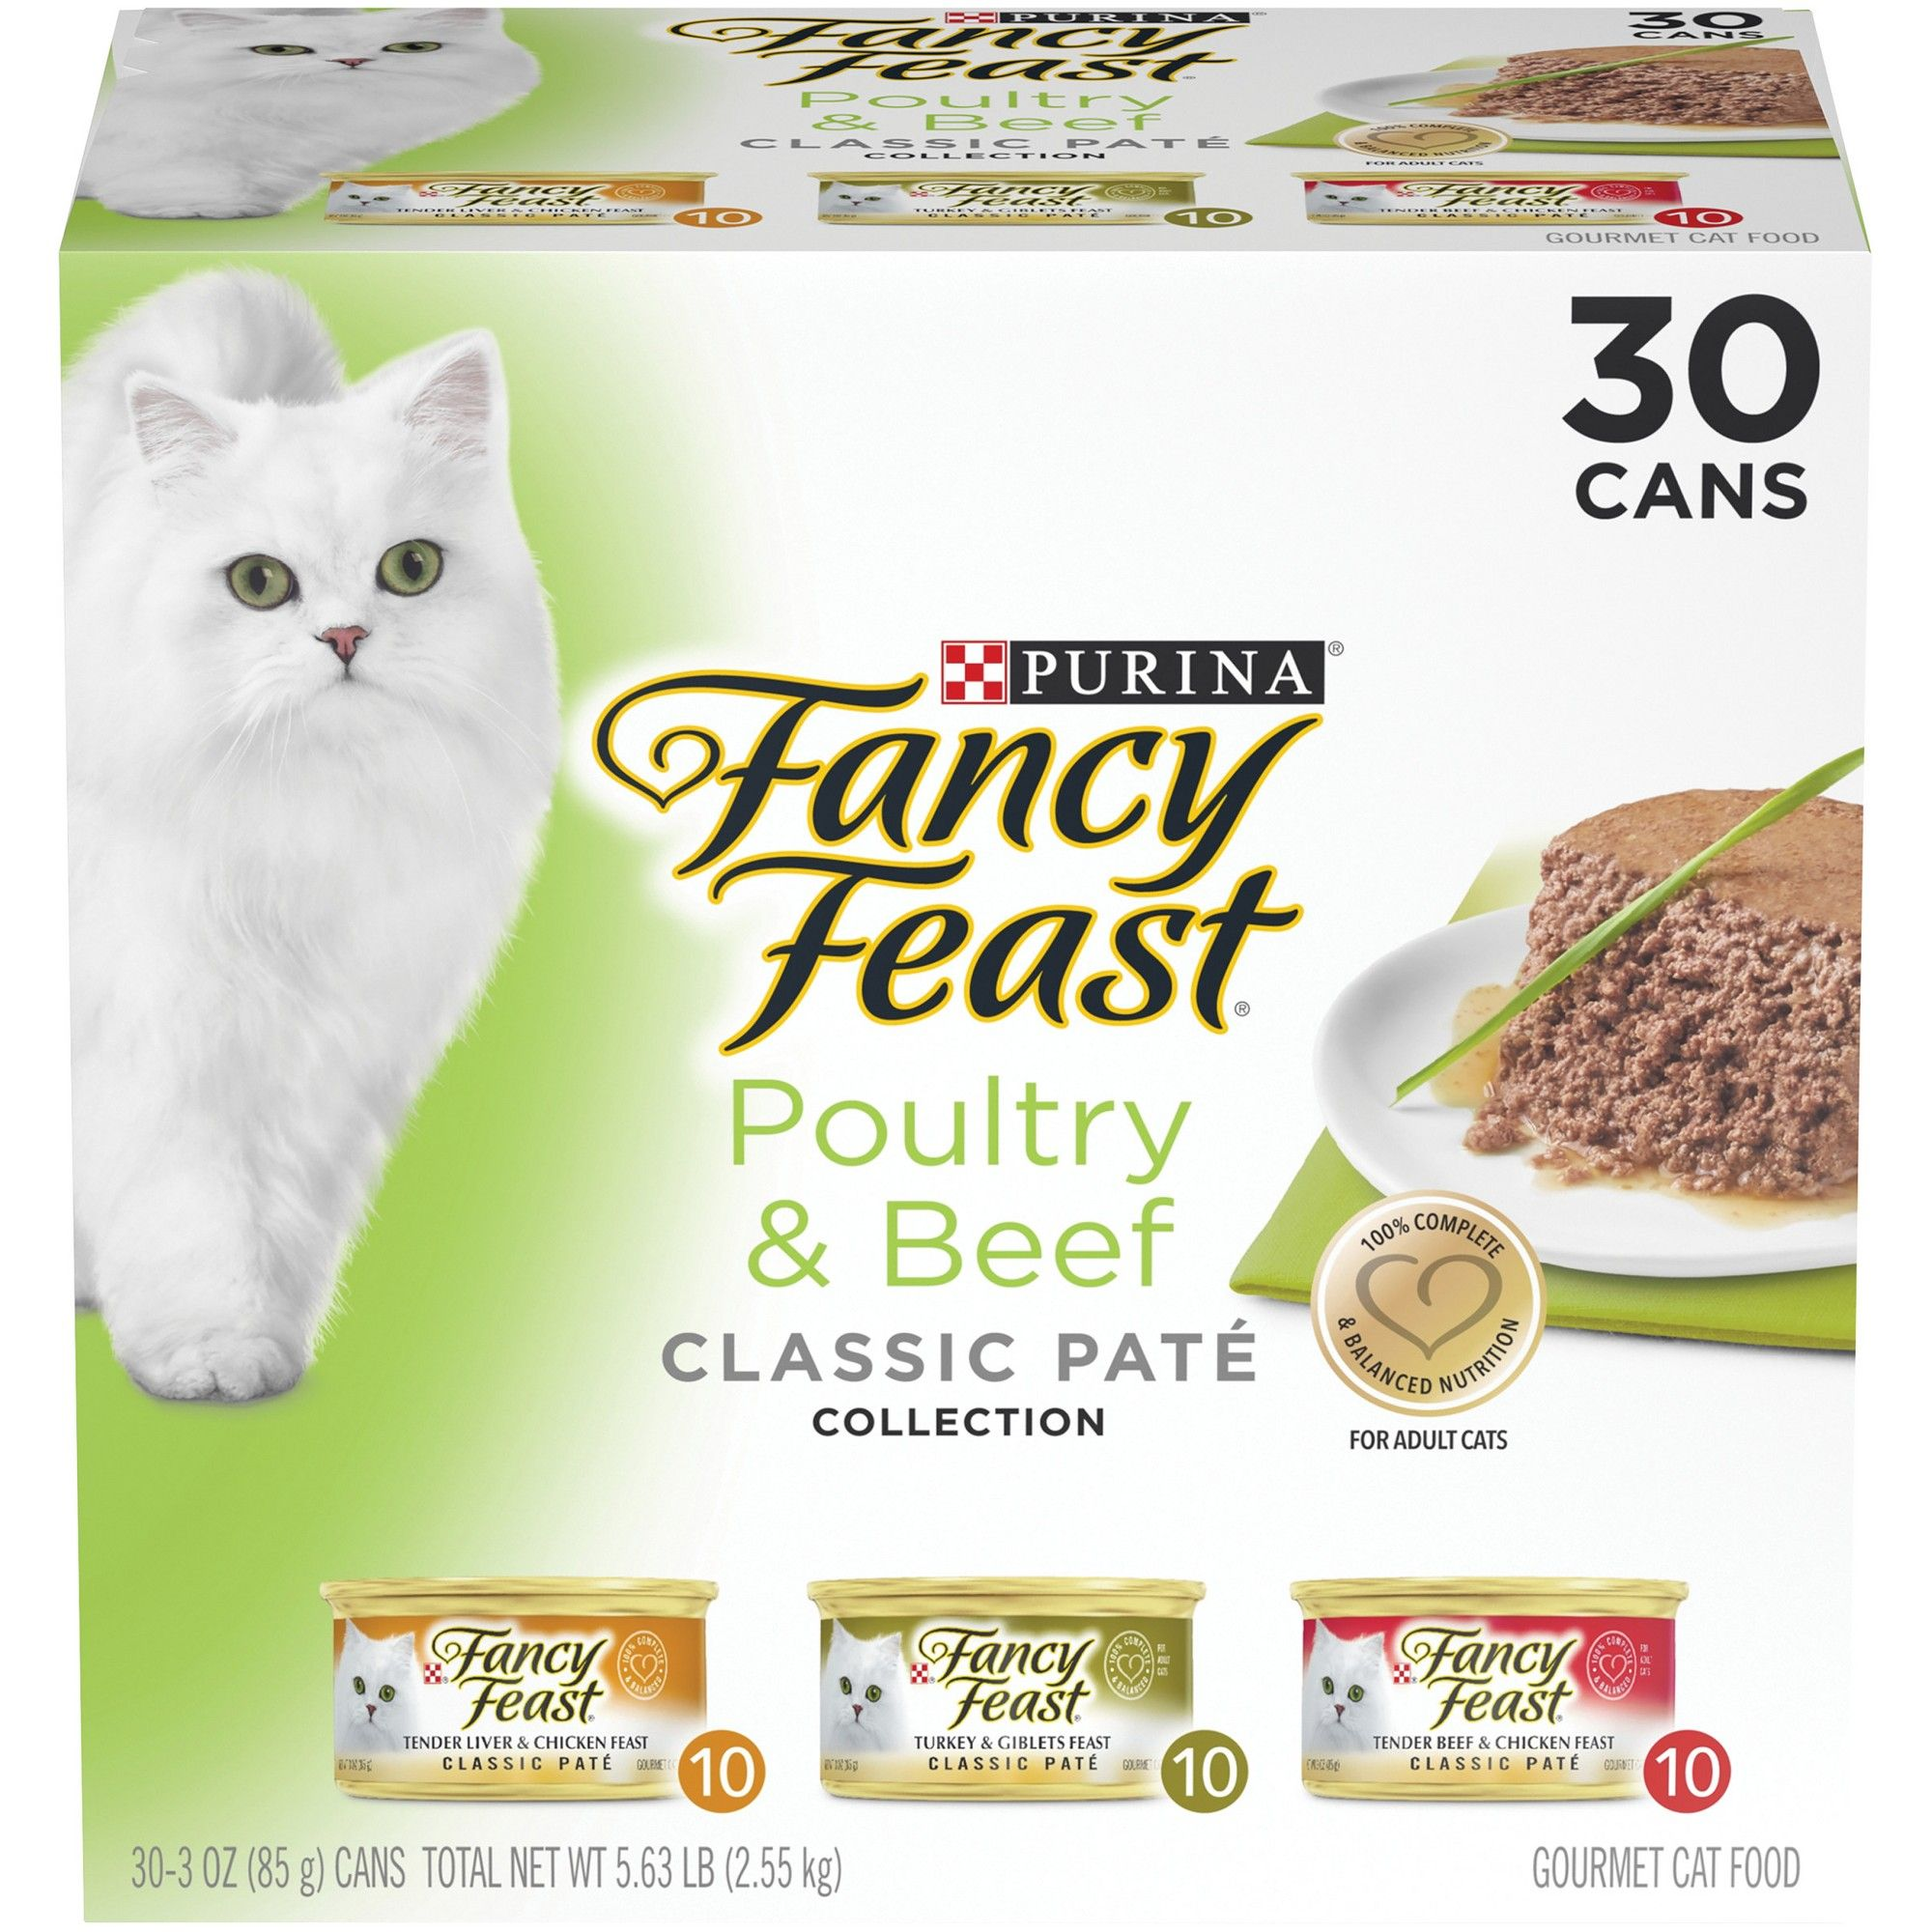 Purina Fancy Feast Classic Poultry Beef Feast Variety Wet Cat Food 3oz Cans 30pk Cat Food Grain Free Cat Food Canned Cat Food